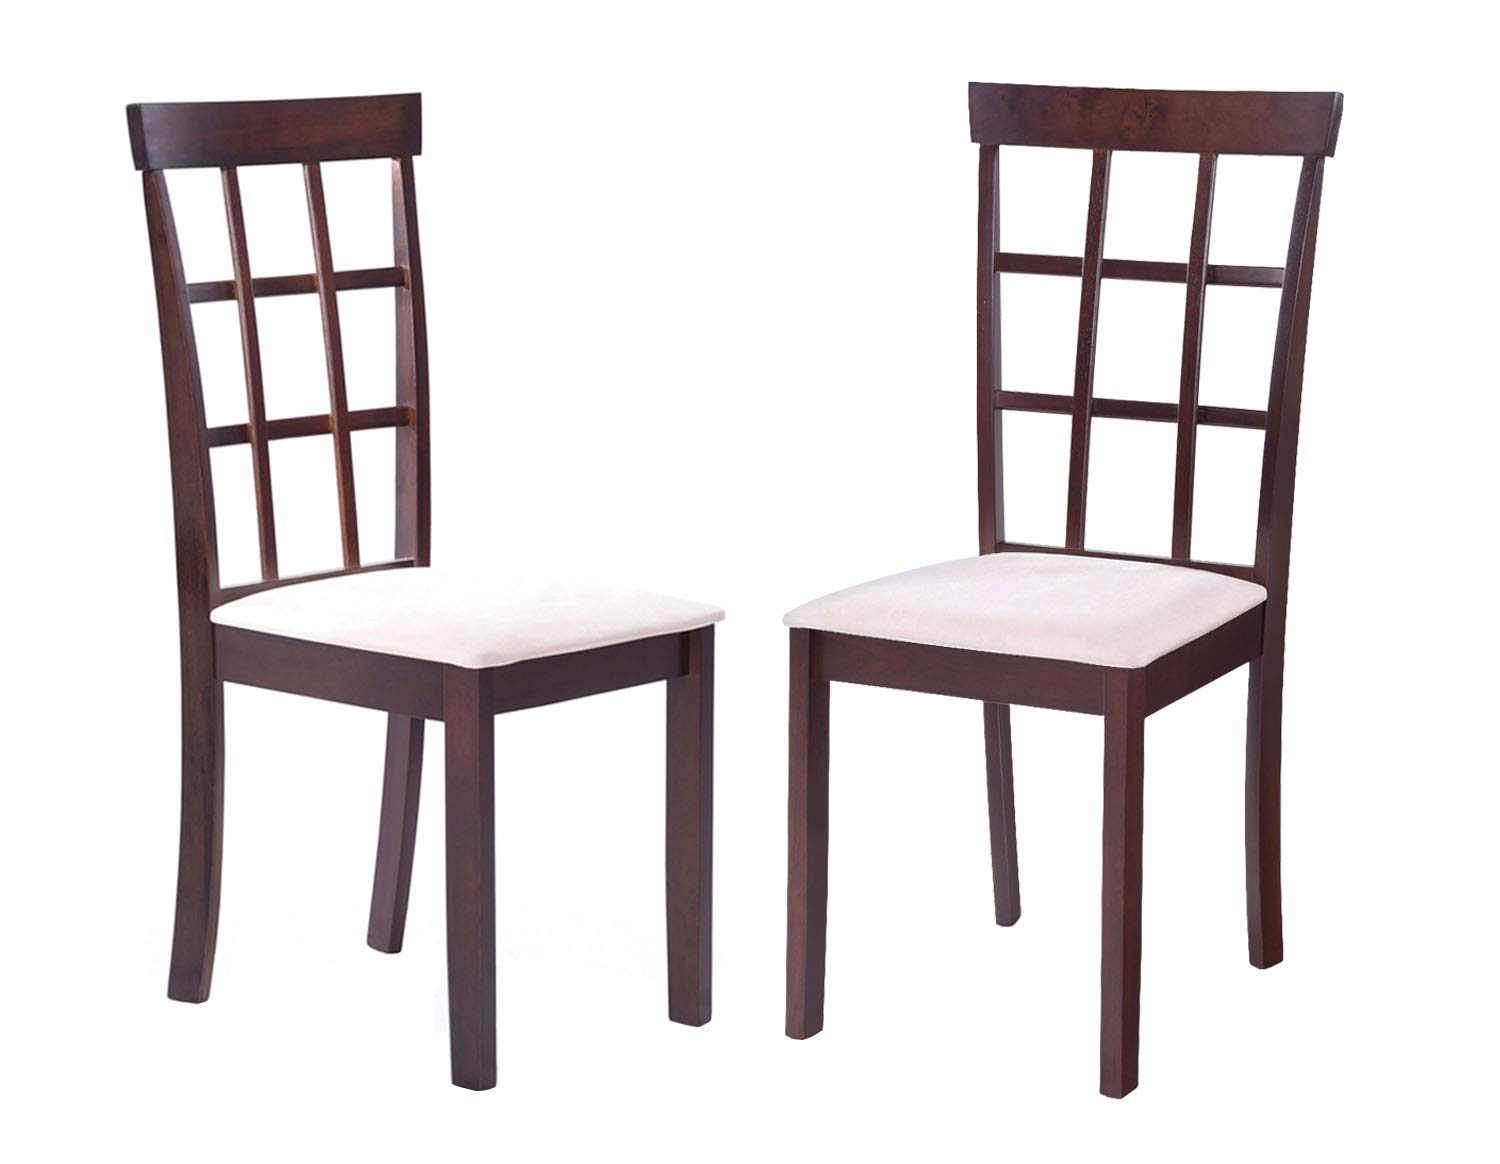 Amazon com harperbright designs rustic dining chairs set of 2 on rubber wood dining side chair with microsuede upholstered seat set of 2 chairs kitchen